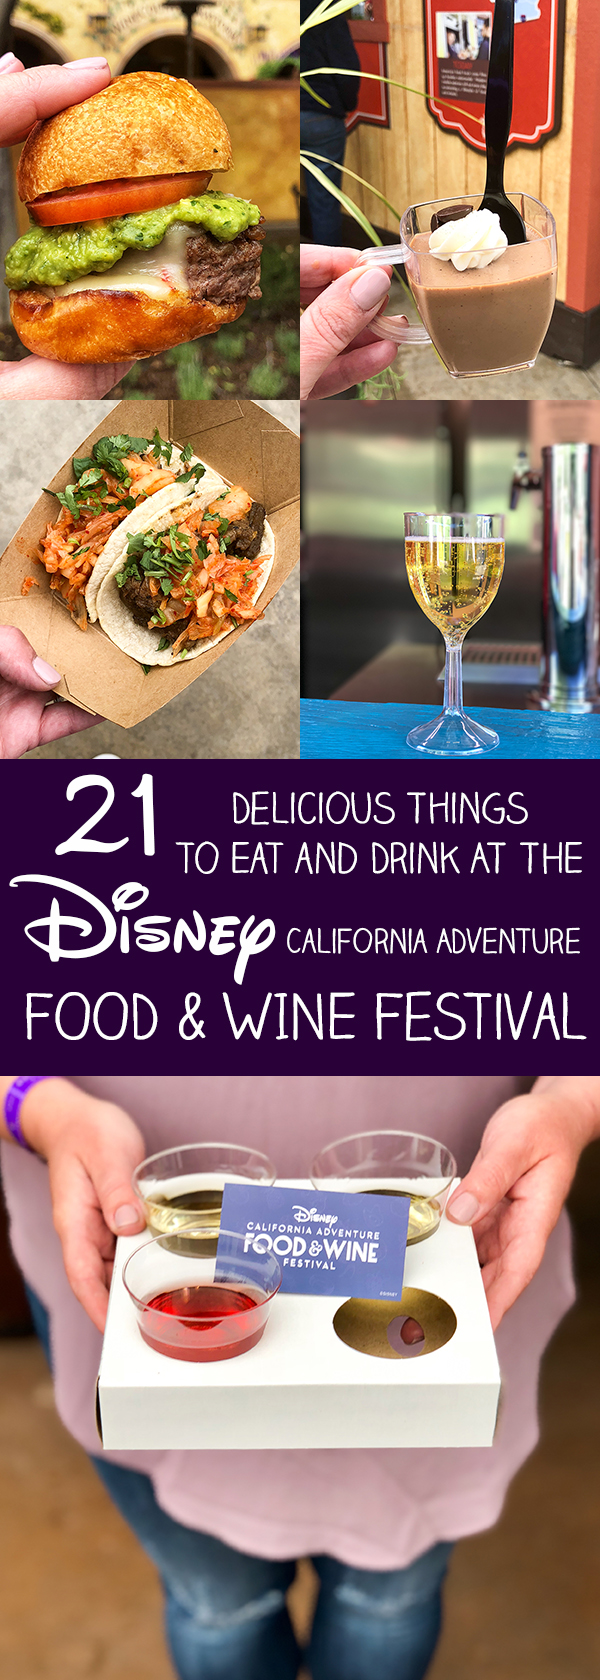 Disney California Adventure Food and Wine Festival at Disneyland